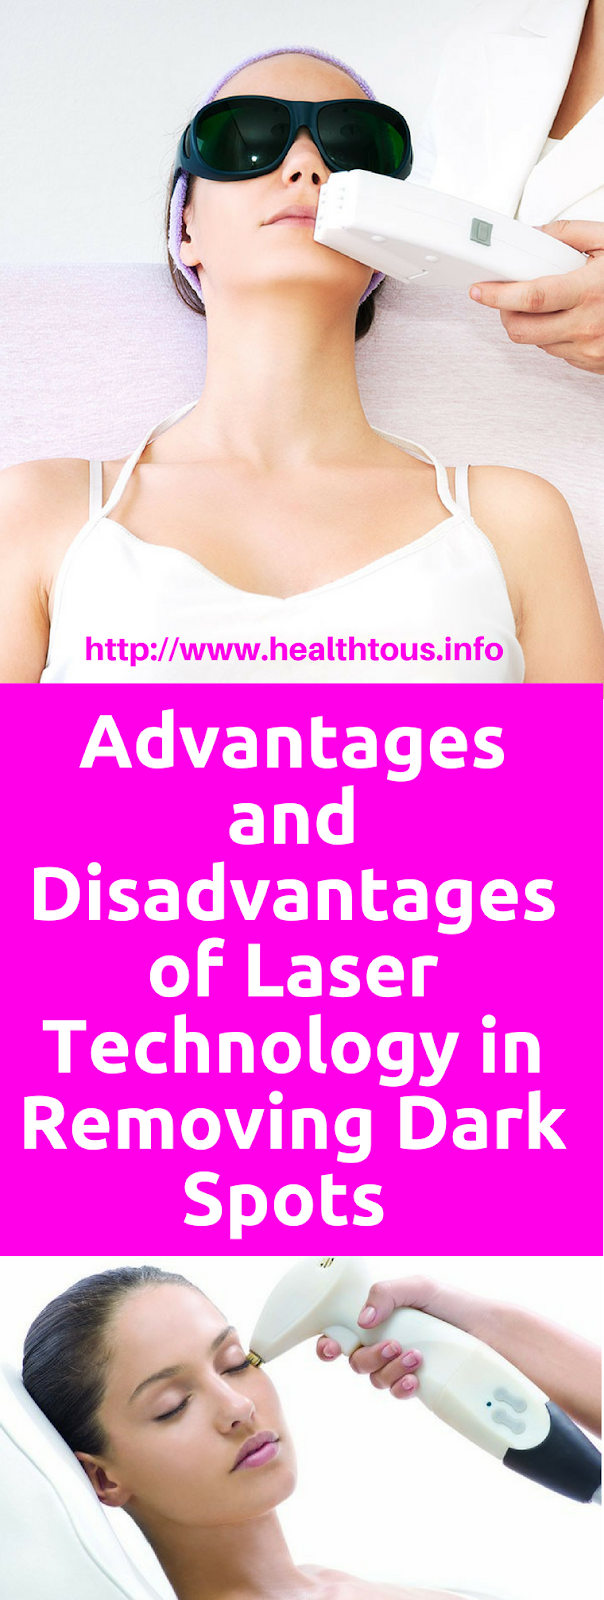 advantages and disadvantages of lasers A comparative analysis of the advantages and disadvantages of laser light and led light source 1 a comparative analysis of the advantages and disadvantages of laser light and led light source every technological advances and breakthroughs will change the competitive landscape of an industry fundamentally.